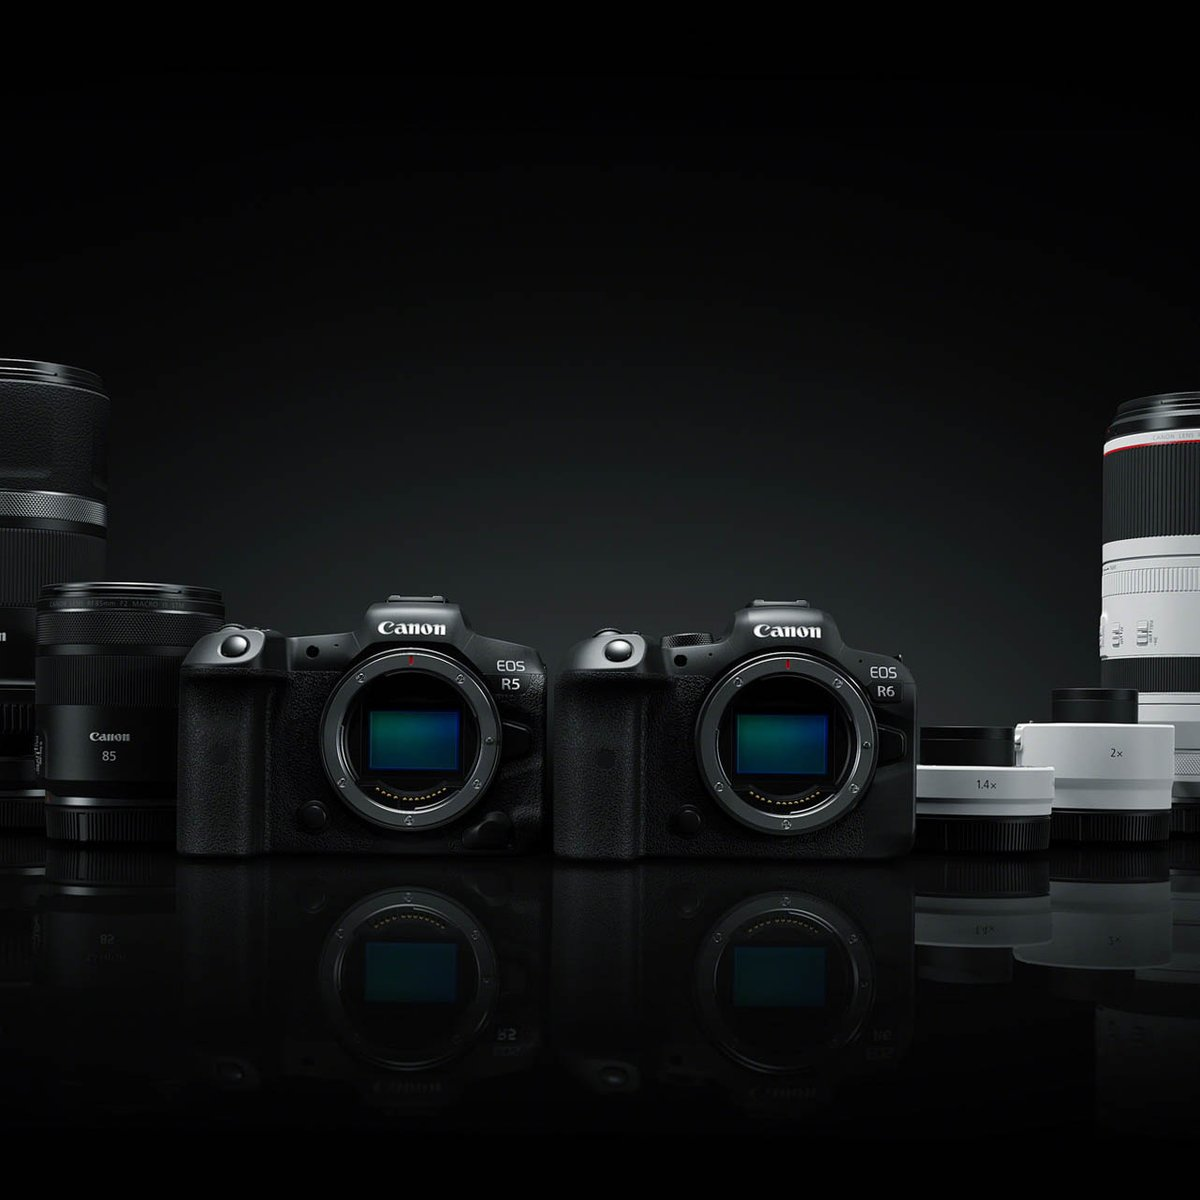 RT @CanonUKandIE: Reimagine mirrorless with the latest additions to our EOS R System family and the imagePROGRAF PRO-300. https://t.co/d87t…